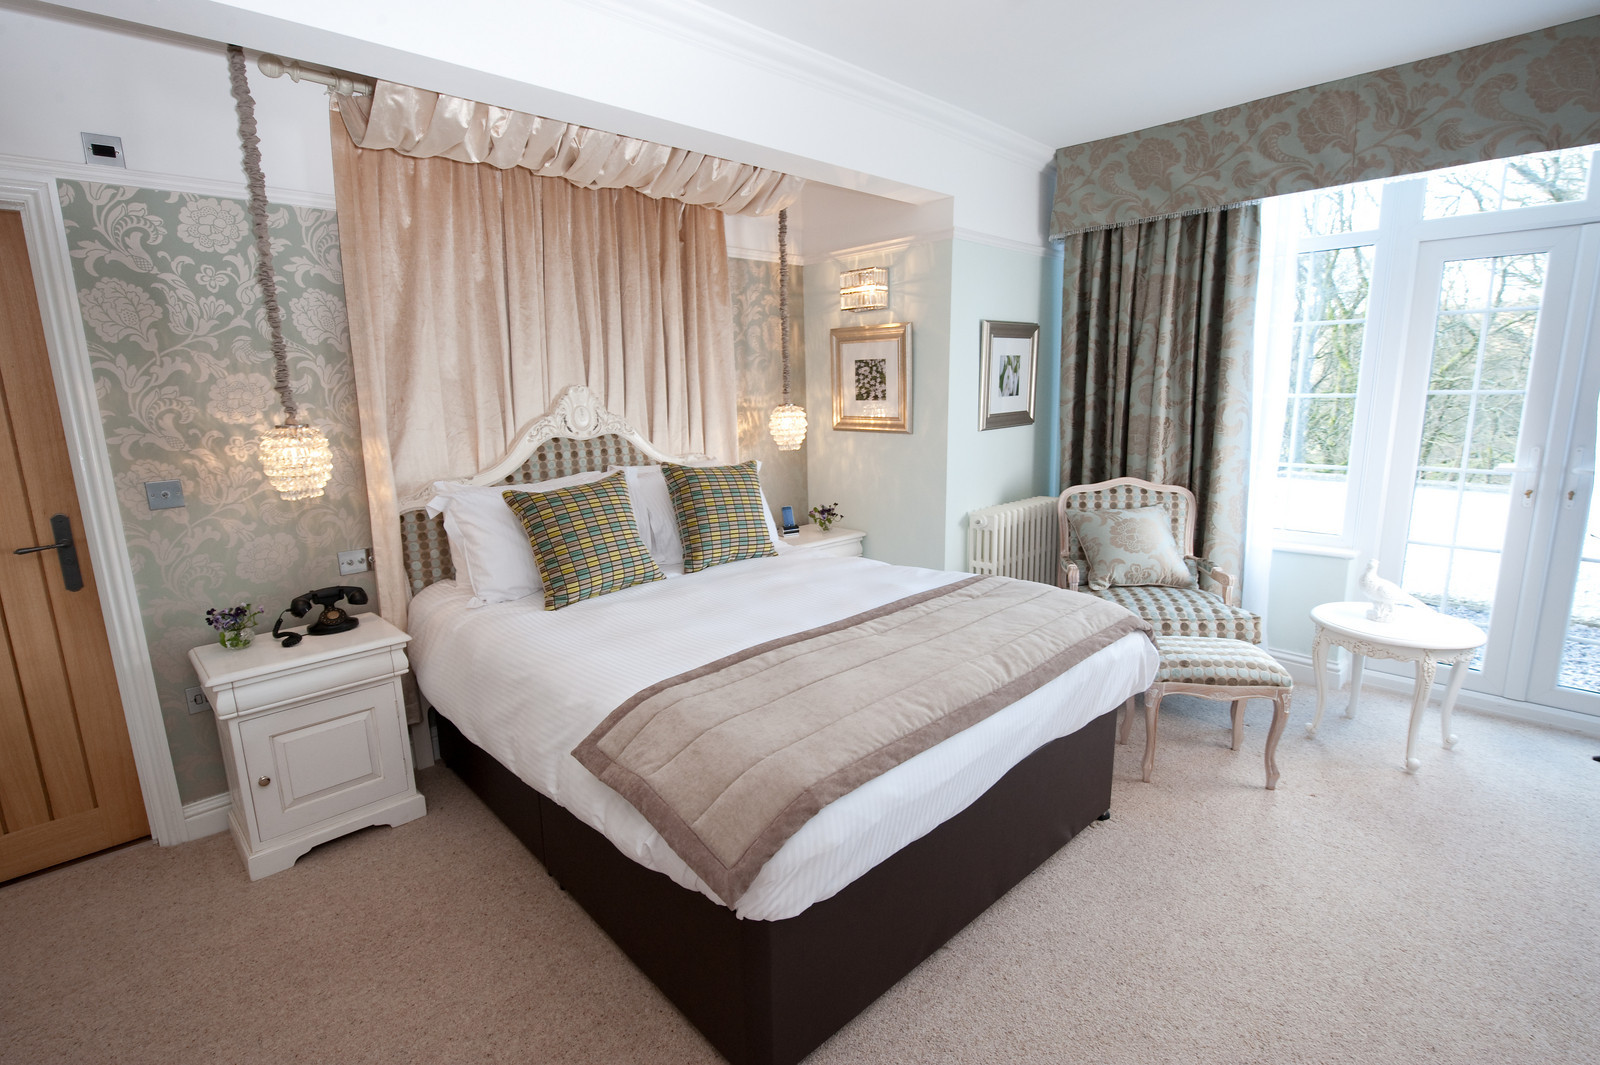 Luxury Individually Styled Bedrooms at The Wild Boar